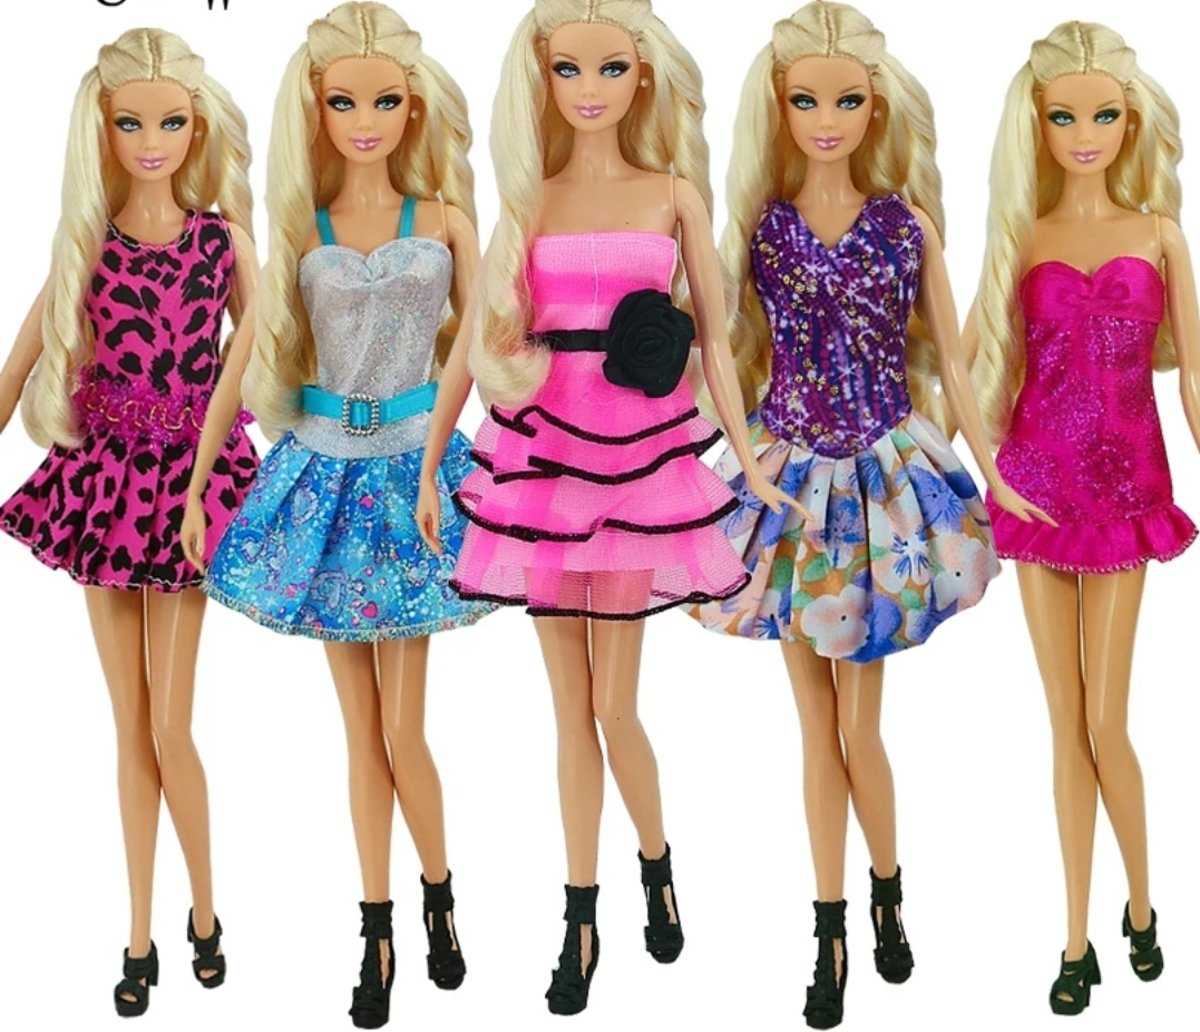 Barbie kleding - 5 delige set - outfits - poppenkleding - fashion  outfiths voor mode poppen - Global